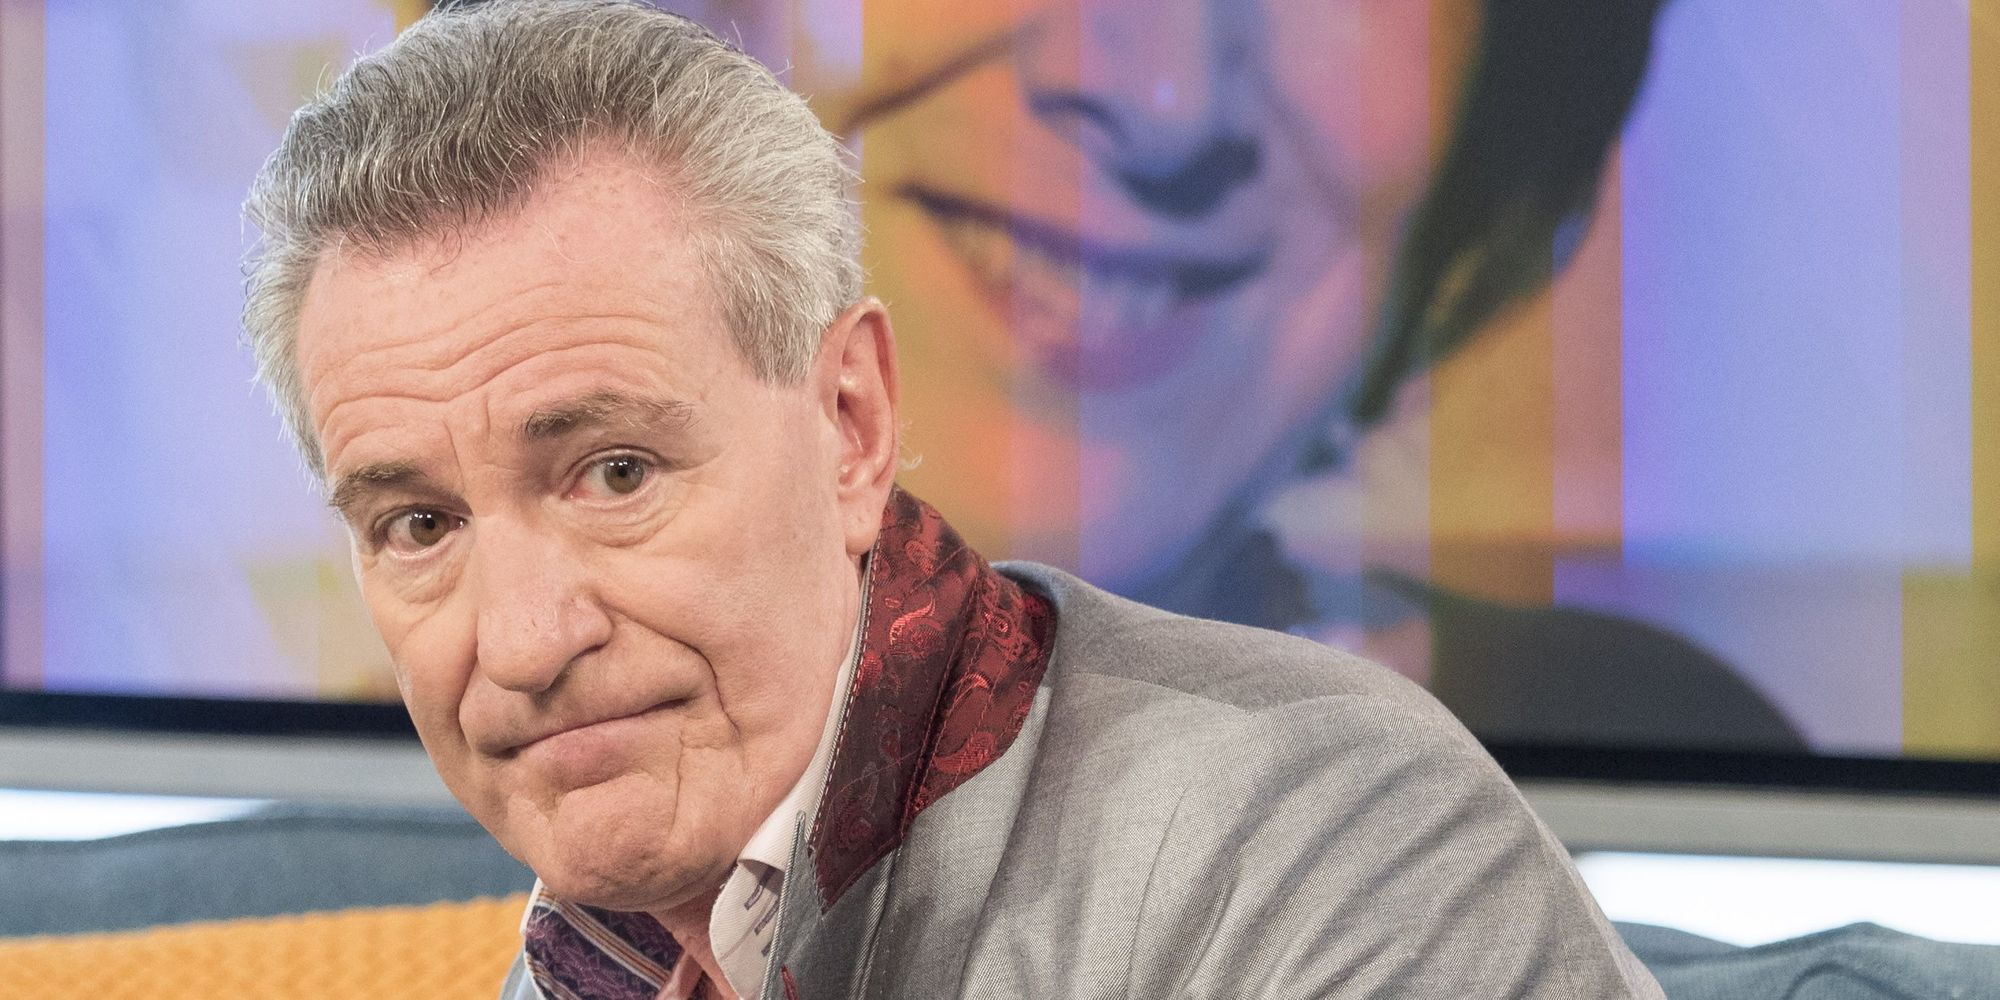 Lynda Bellingham's Widower Michael Pattemore Says Strangers Have Spat In His